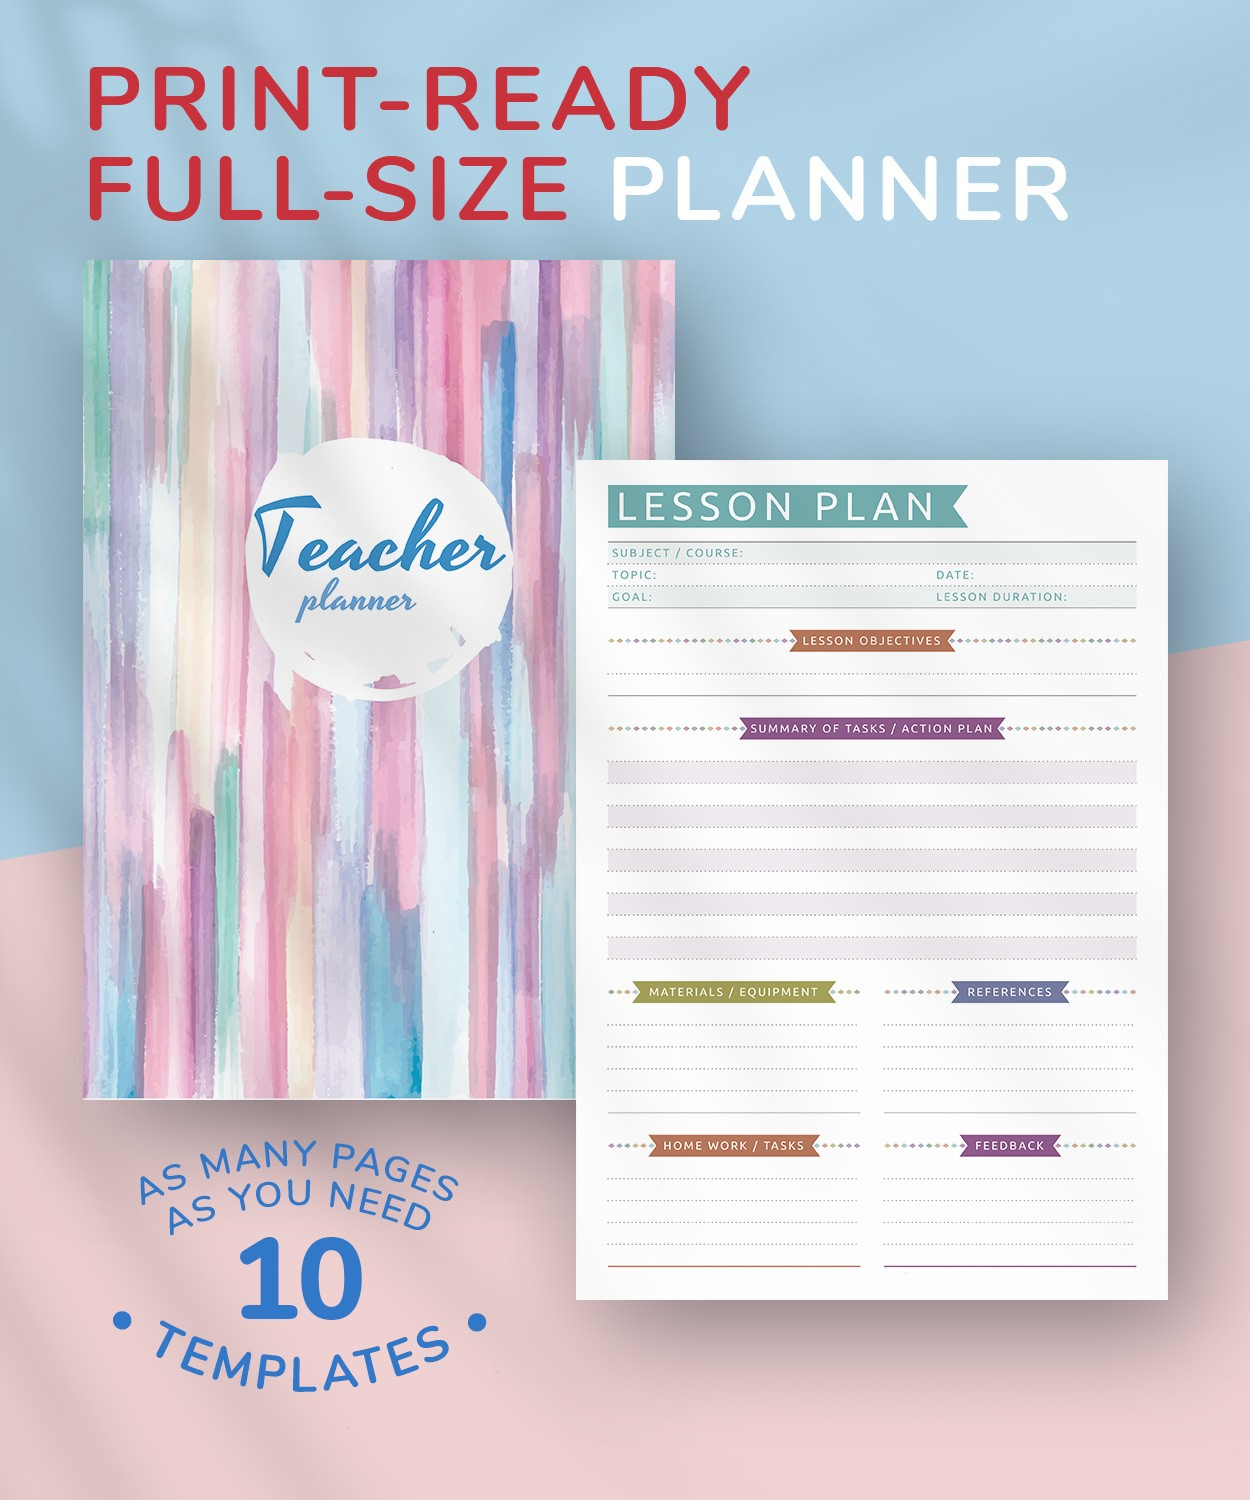 image regarding Printable Teacher Planner titled Absolutely free Printable Trainer Planner - Relaxed Design PDF Down load